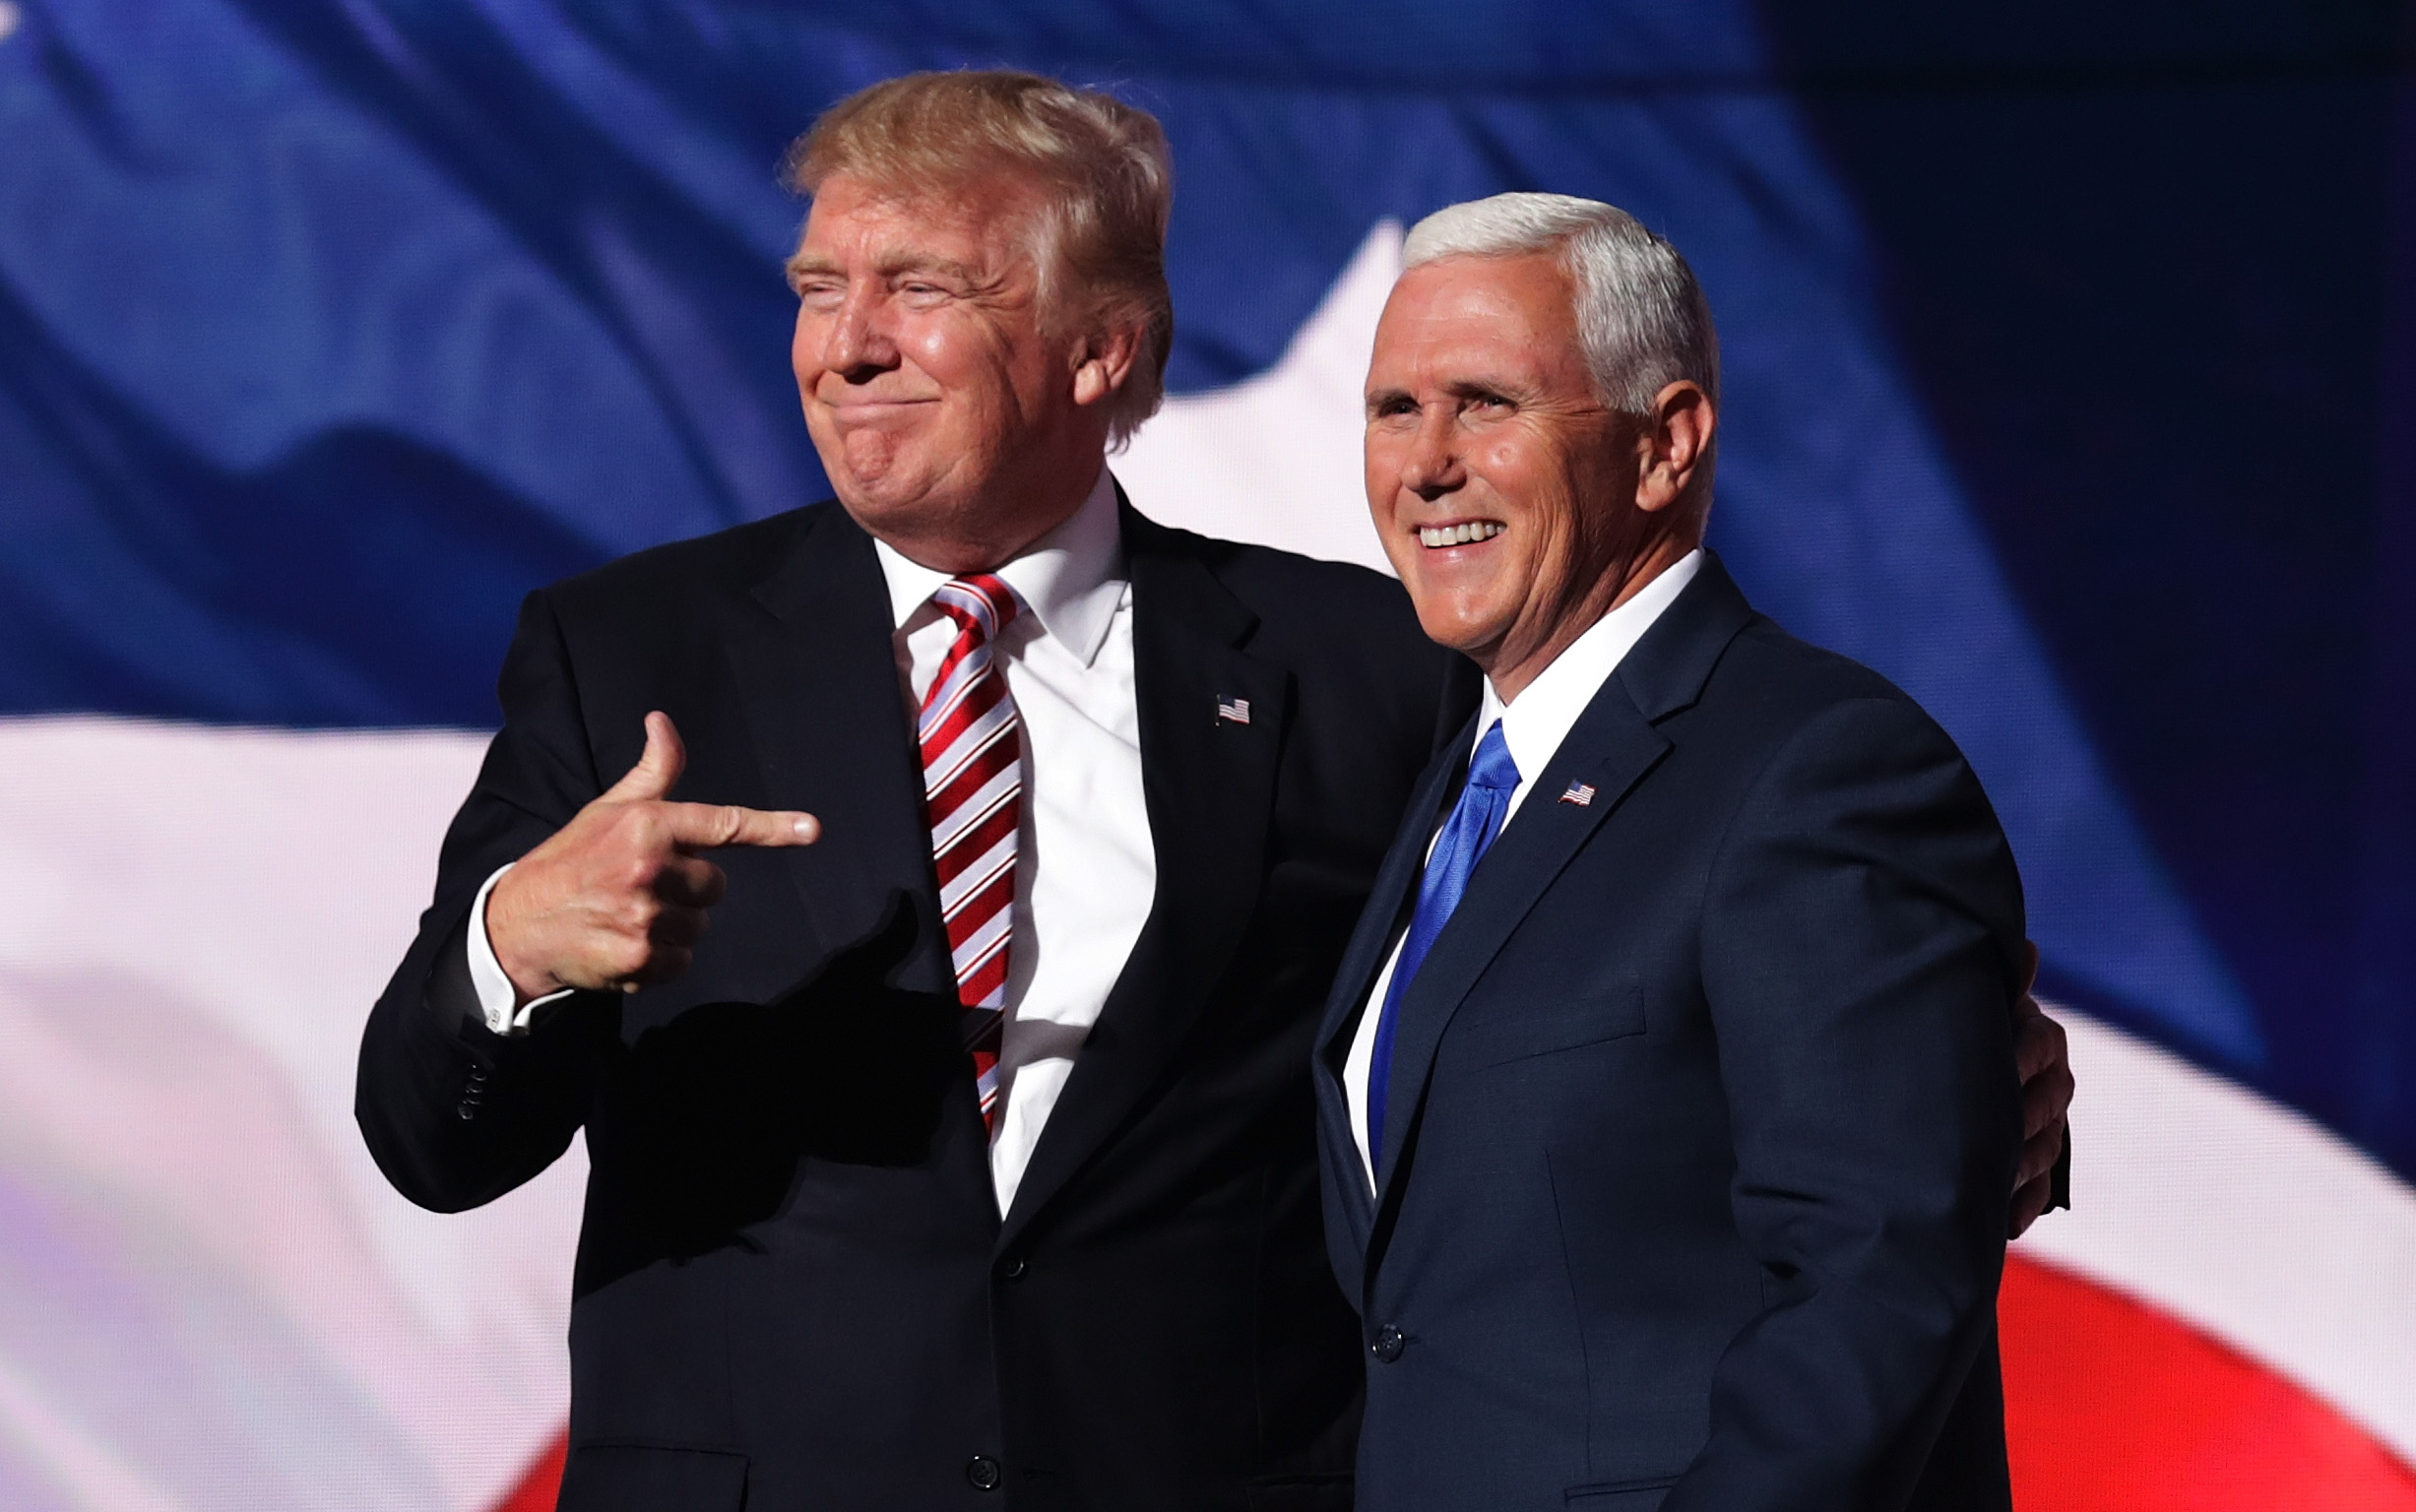 Then-GOP presidential candidate Donald Trump stands with Mike Pence at the Republican National Convention in Cleveland, Ohio.